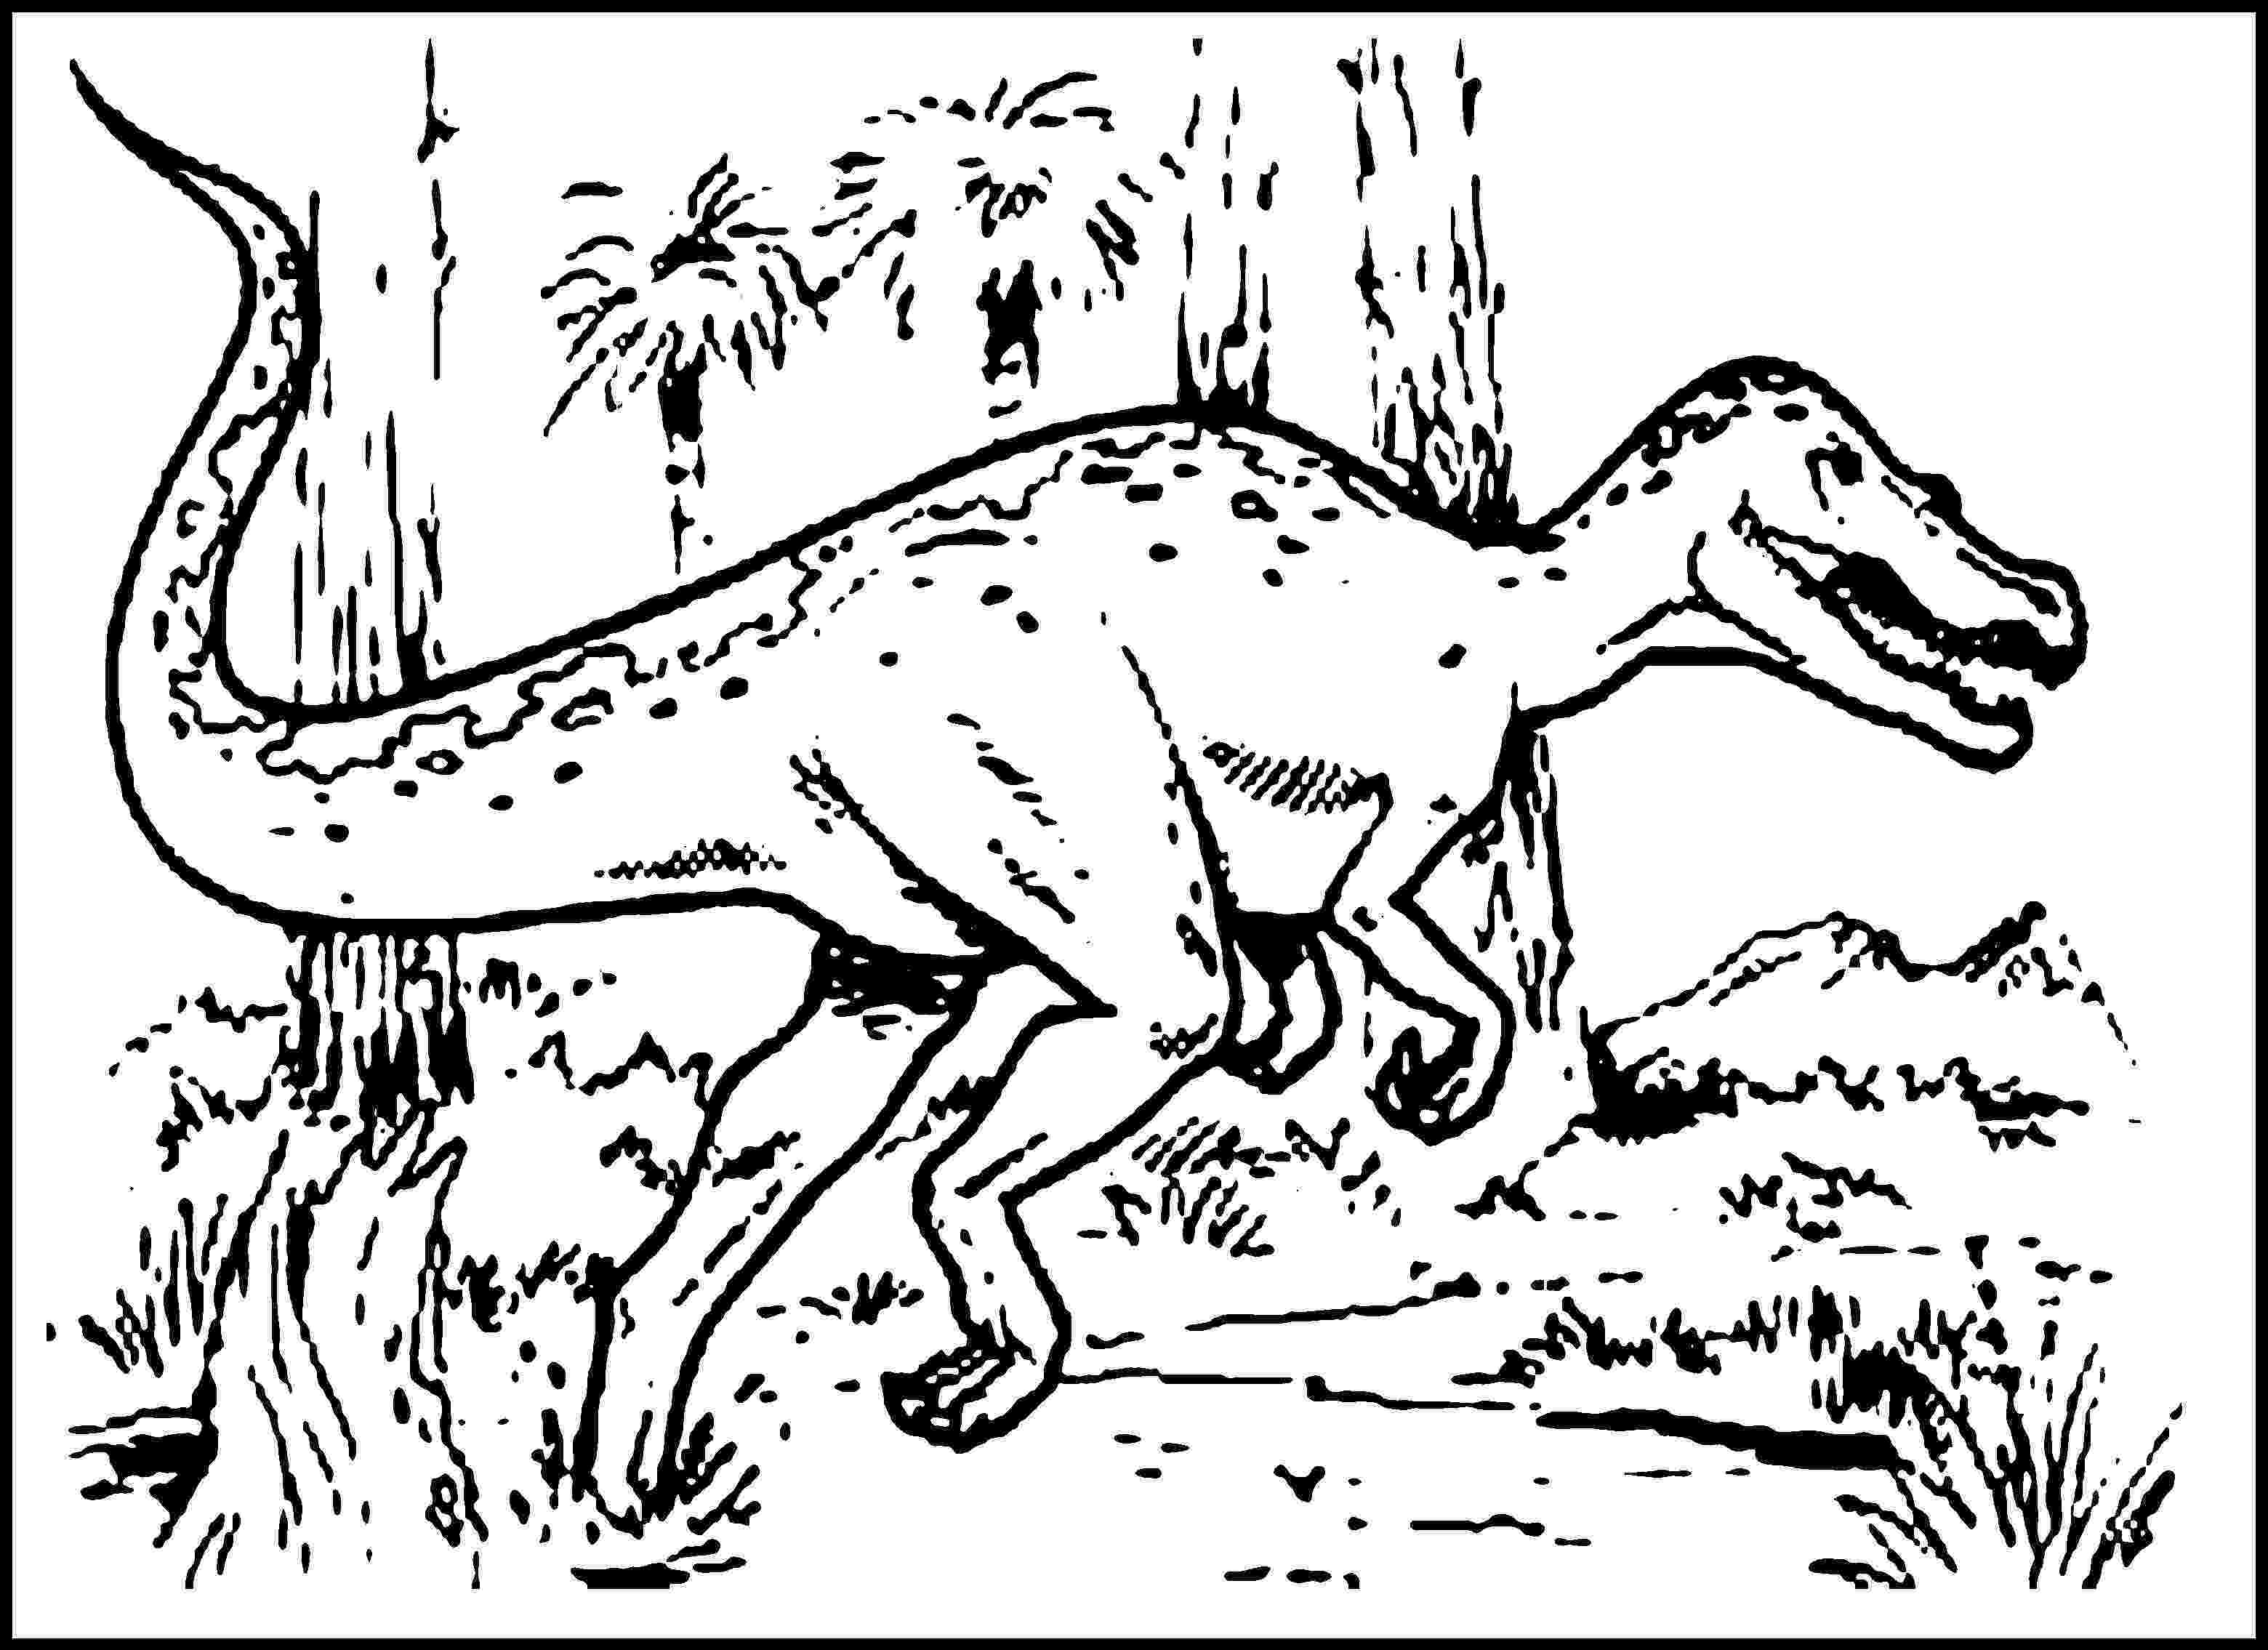 dinosaurs for coloring dinosaurs free to color for kids tyrannosaur rex cartoon for dinosaurs coloring